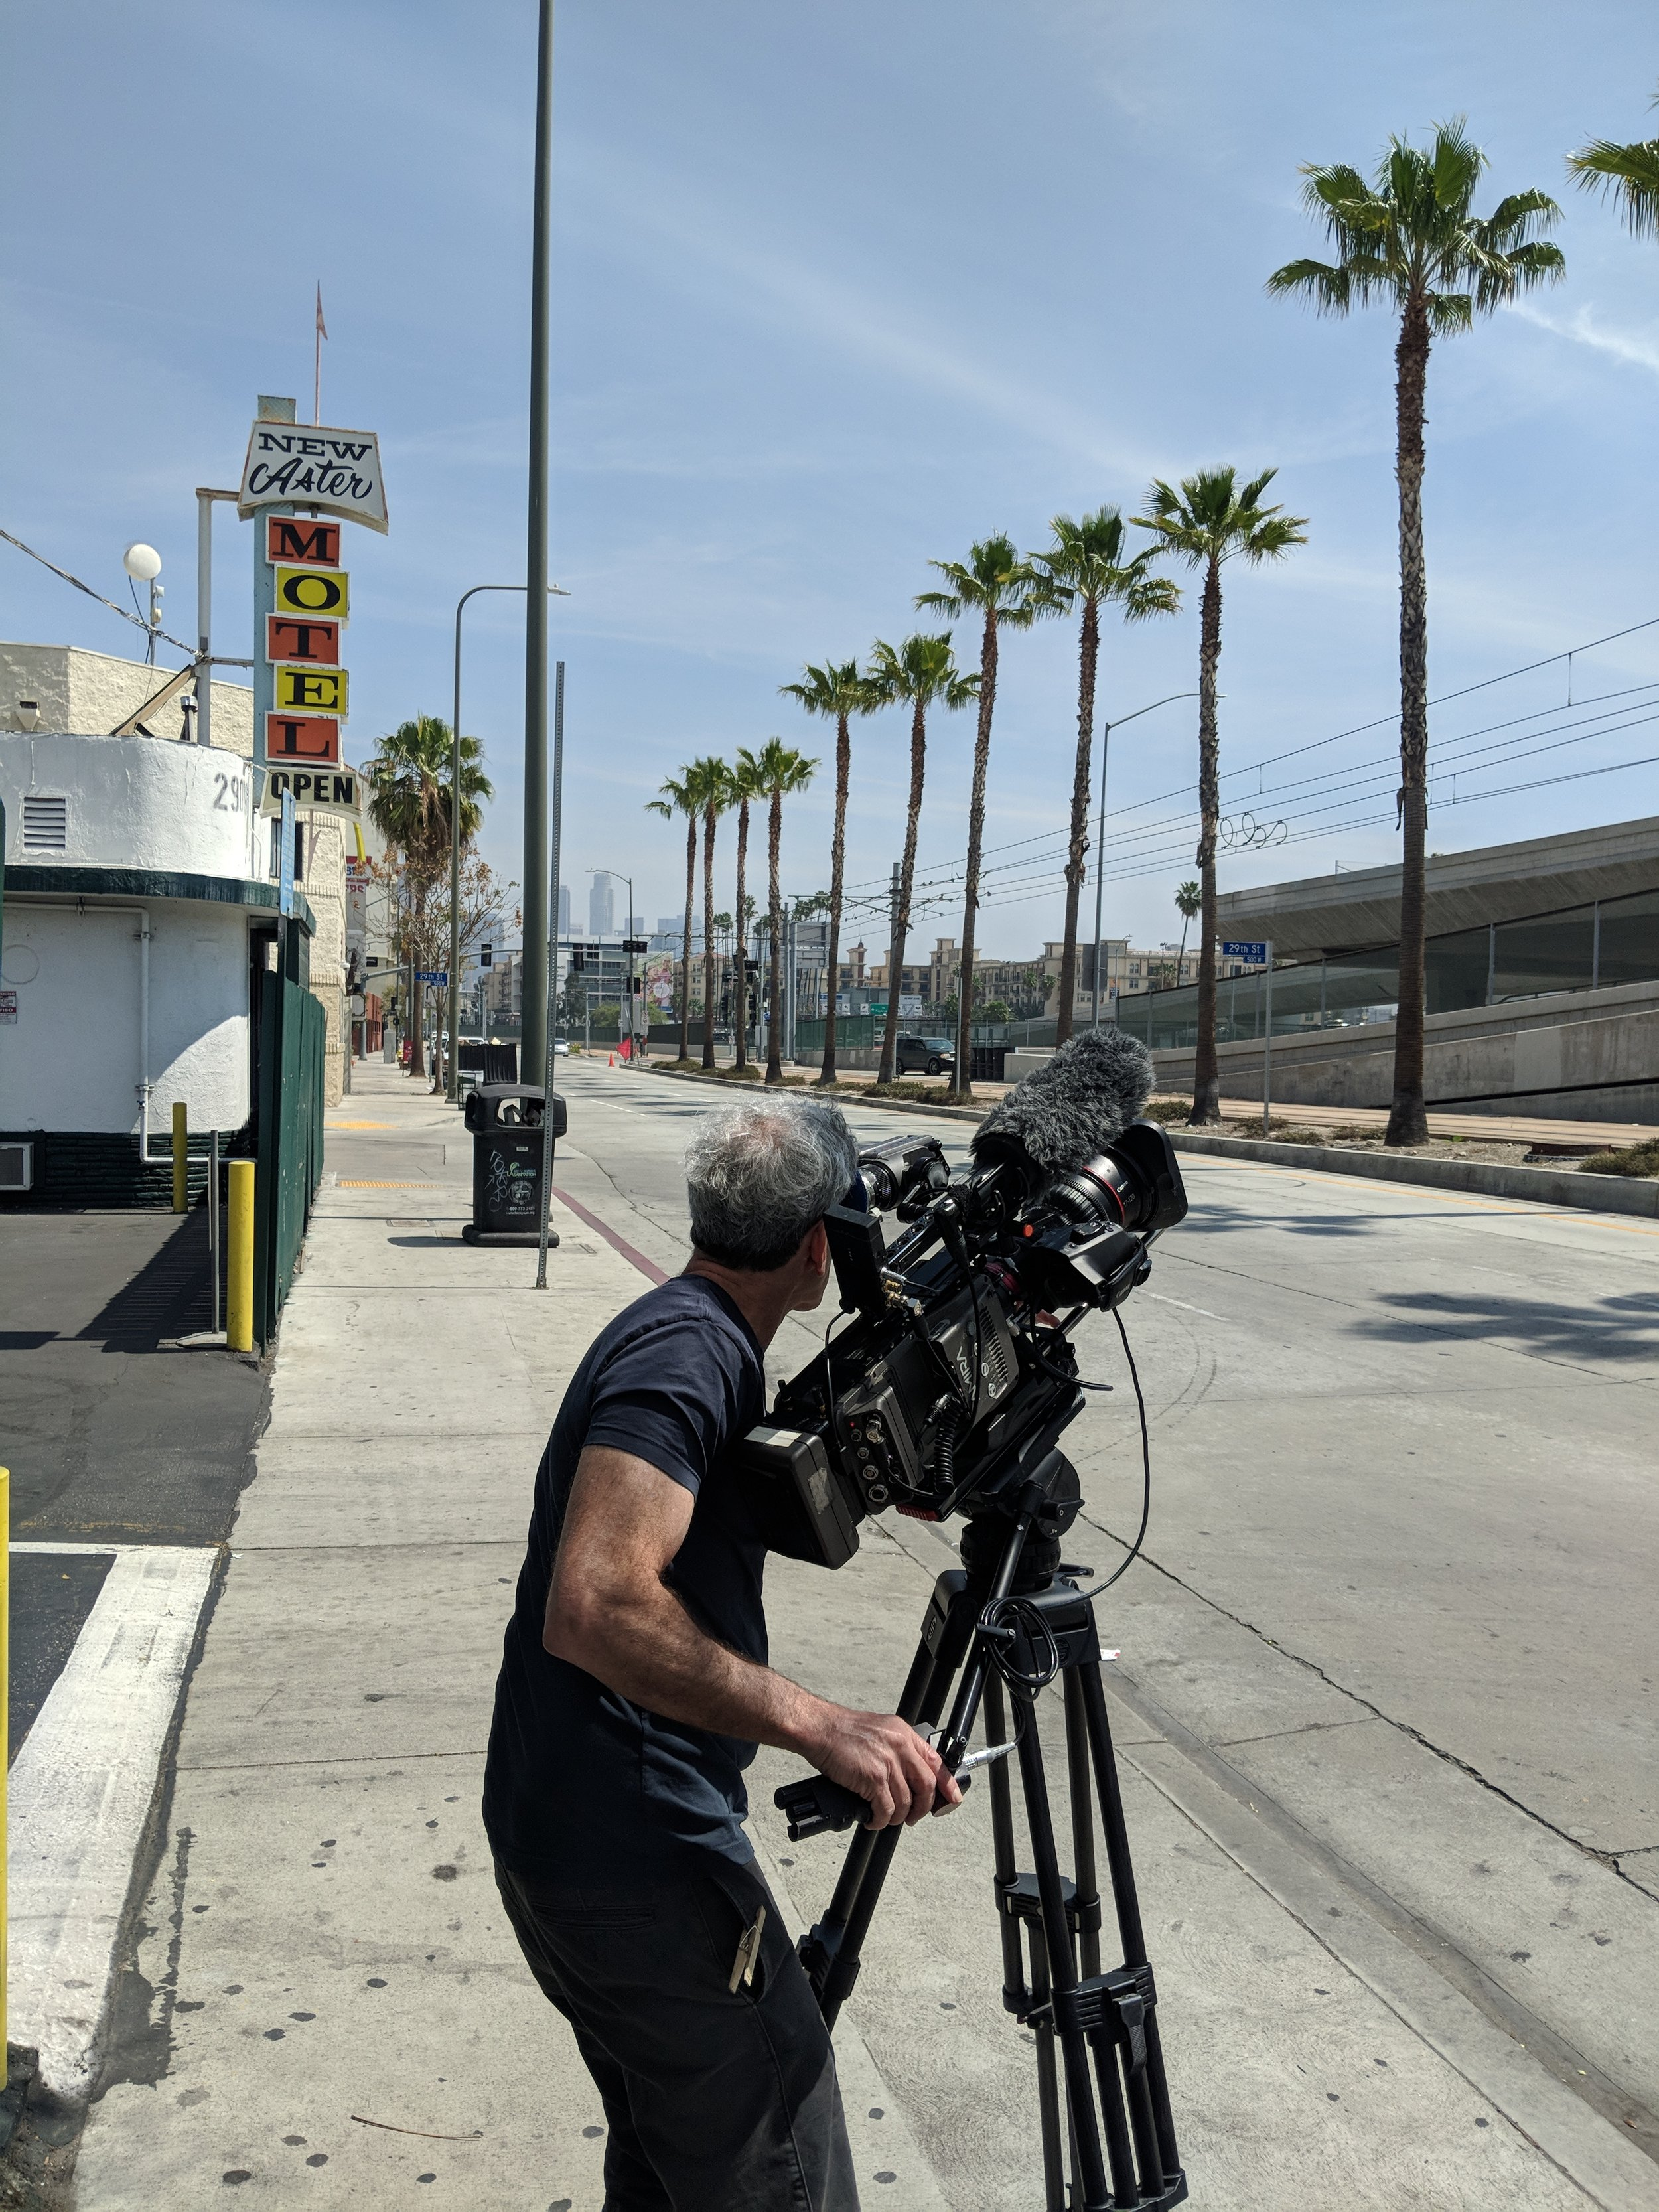 Filming in Los Angeles. Photo by Emily Pfeil